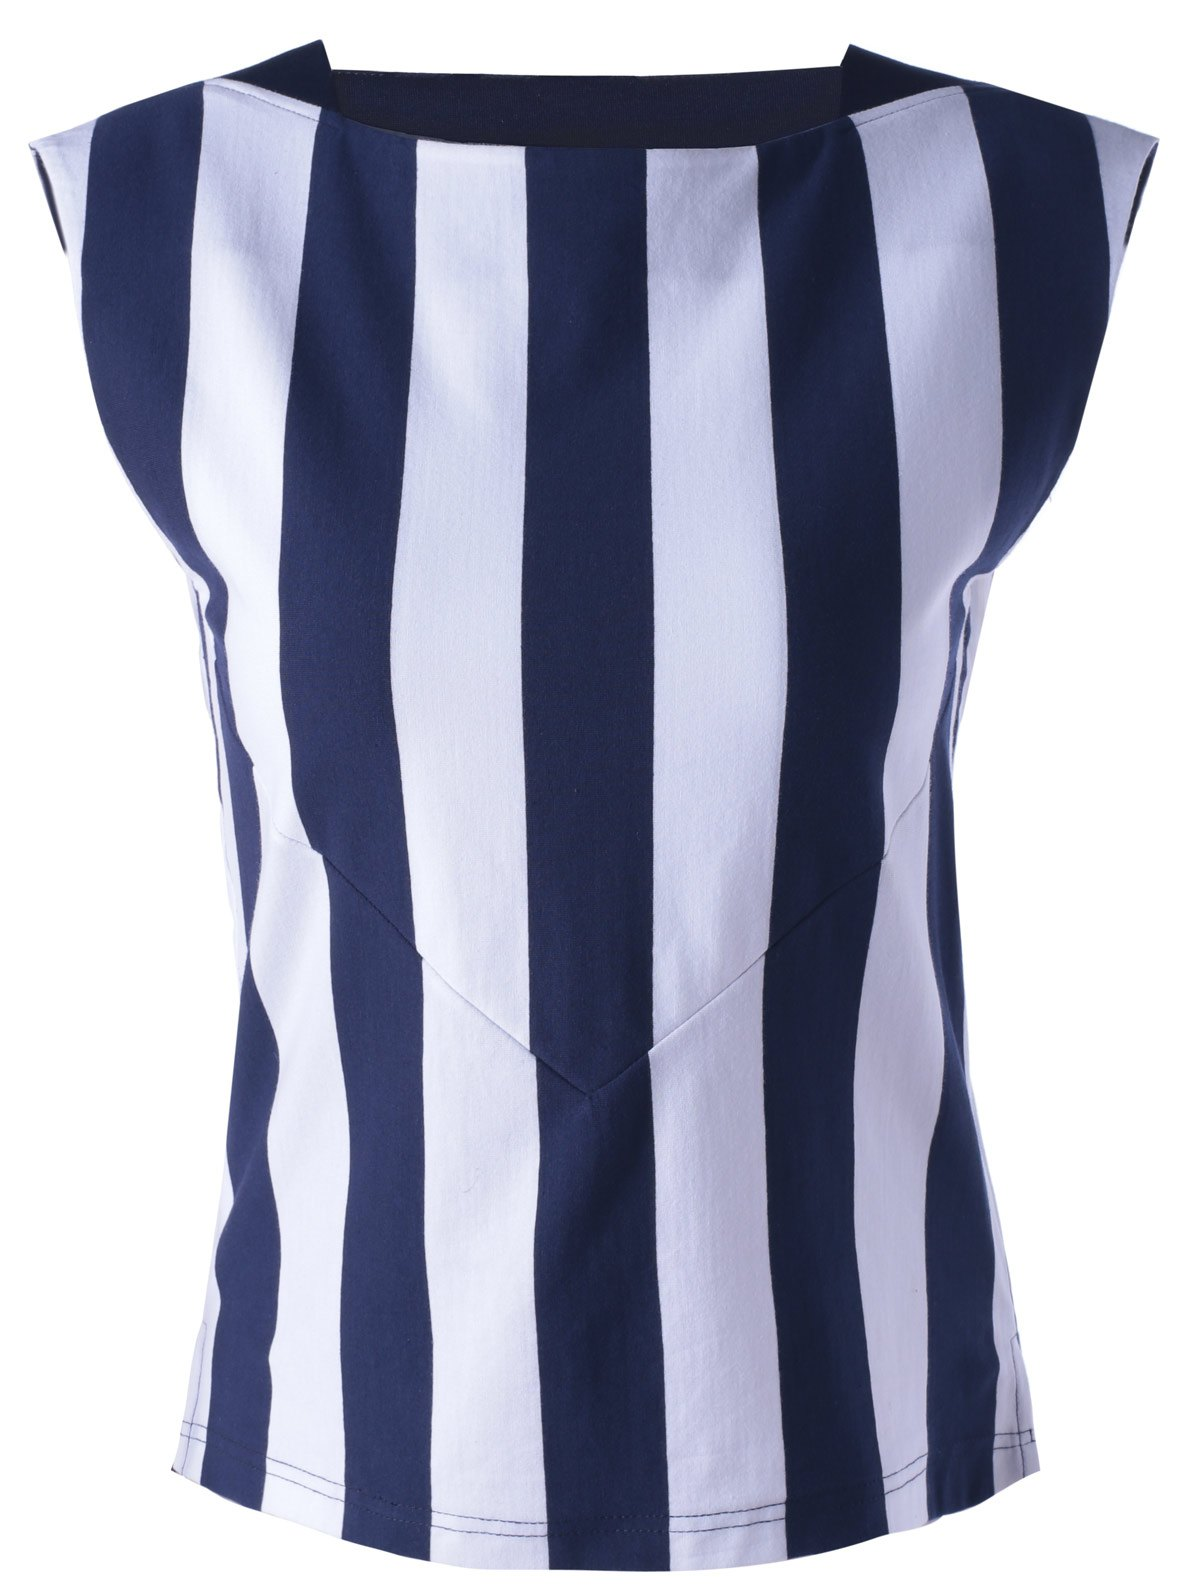 Fashionable Round Collar Spliced Stripe Women's Tank Top